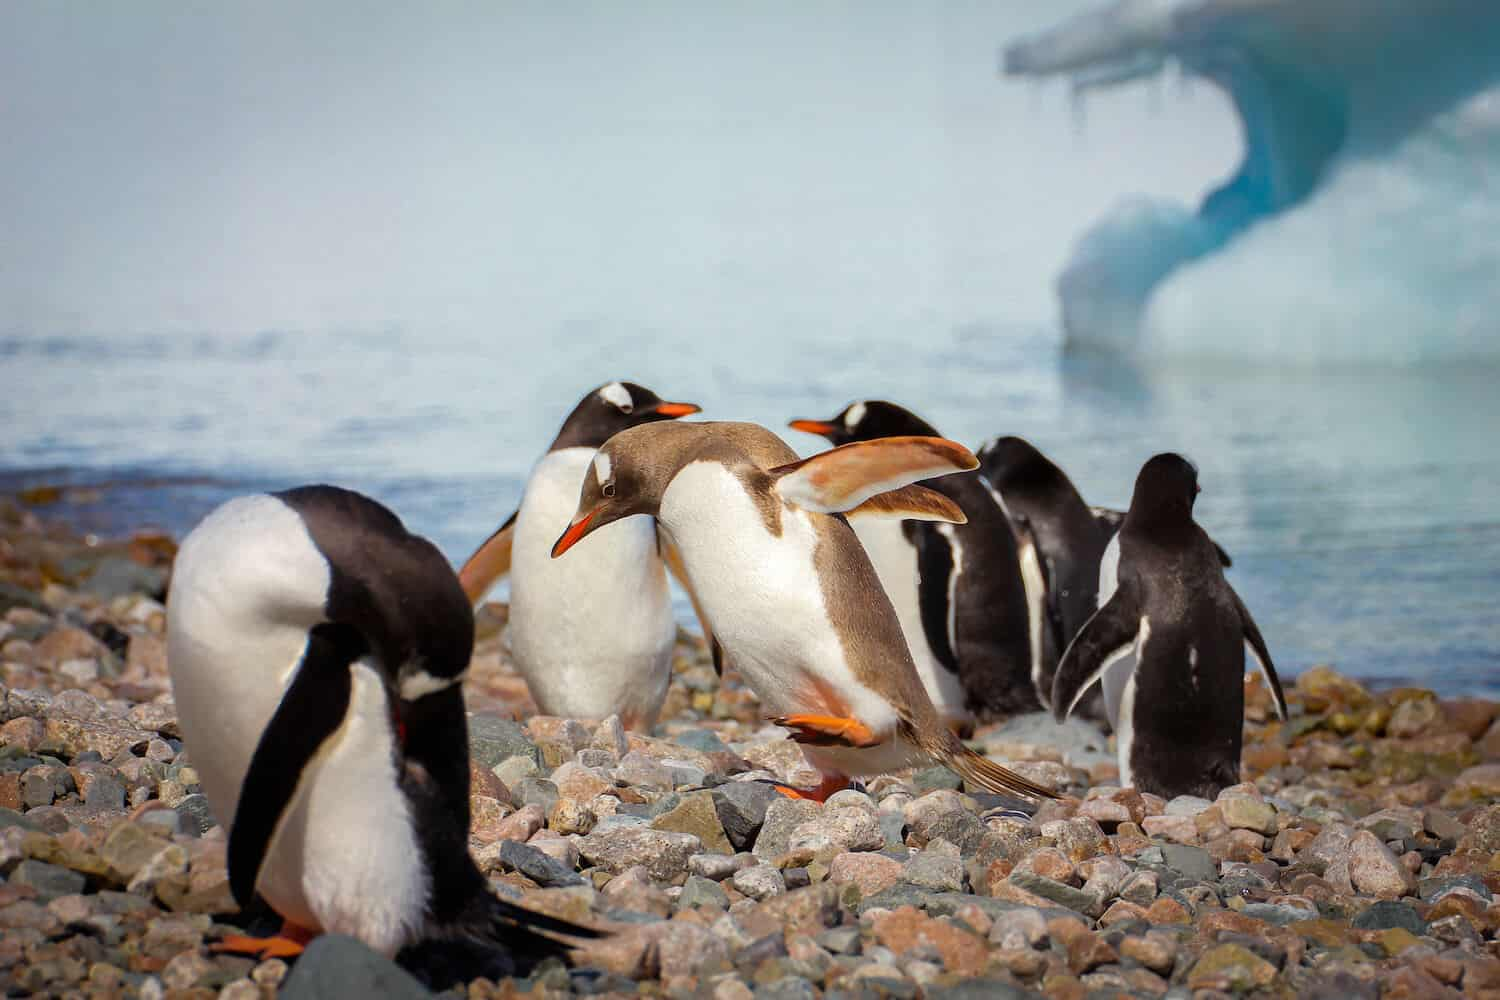 Antarctic Animals: Brown Gentoo Penguin